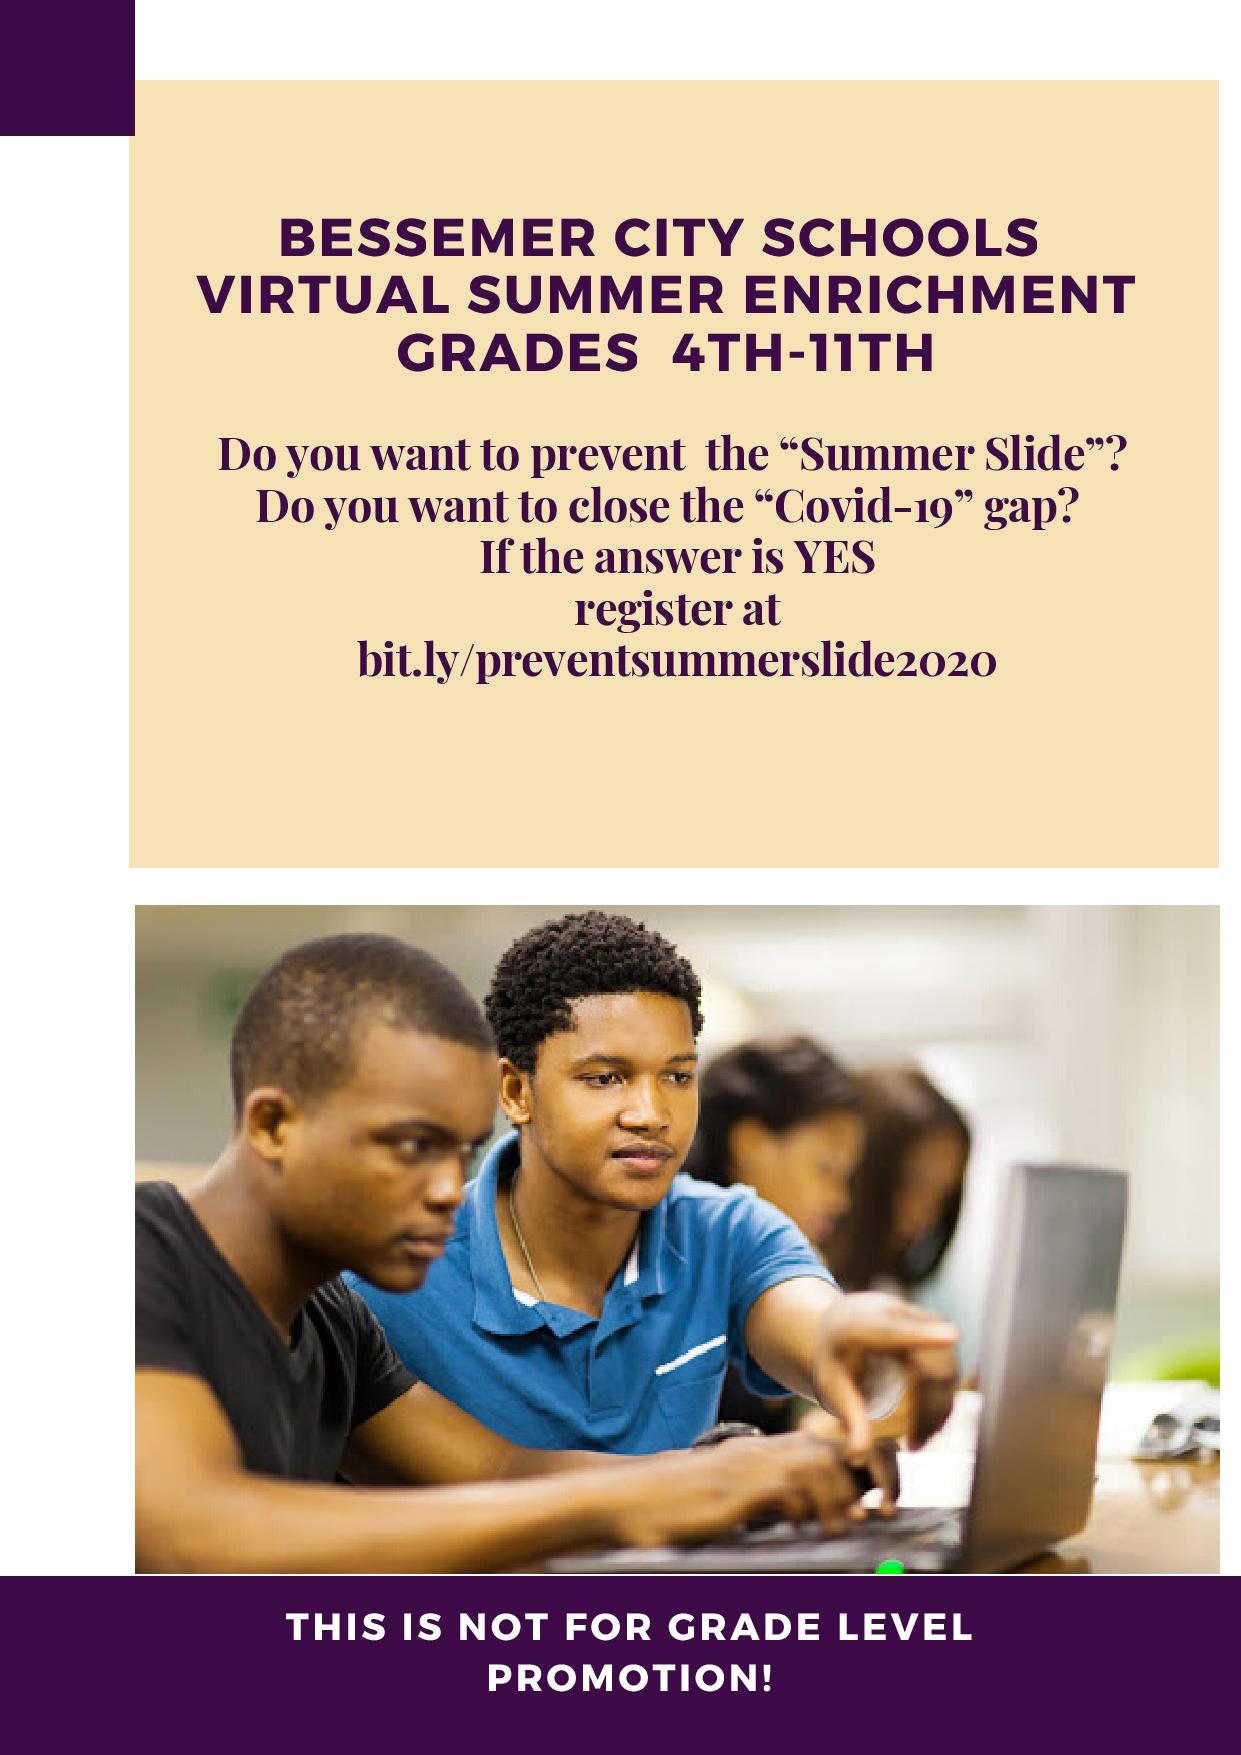 Virtual Summer Enrichment